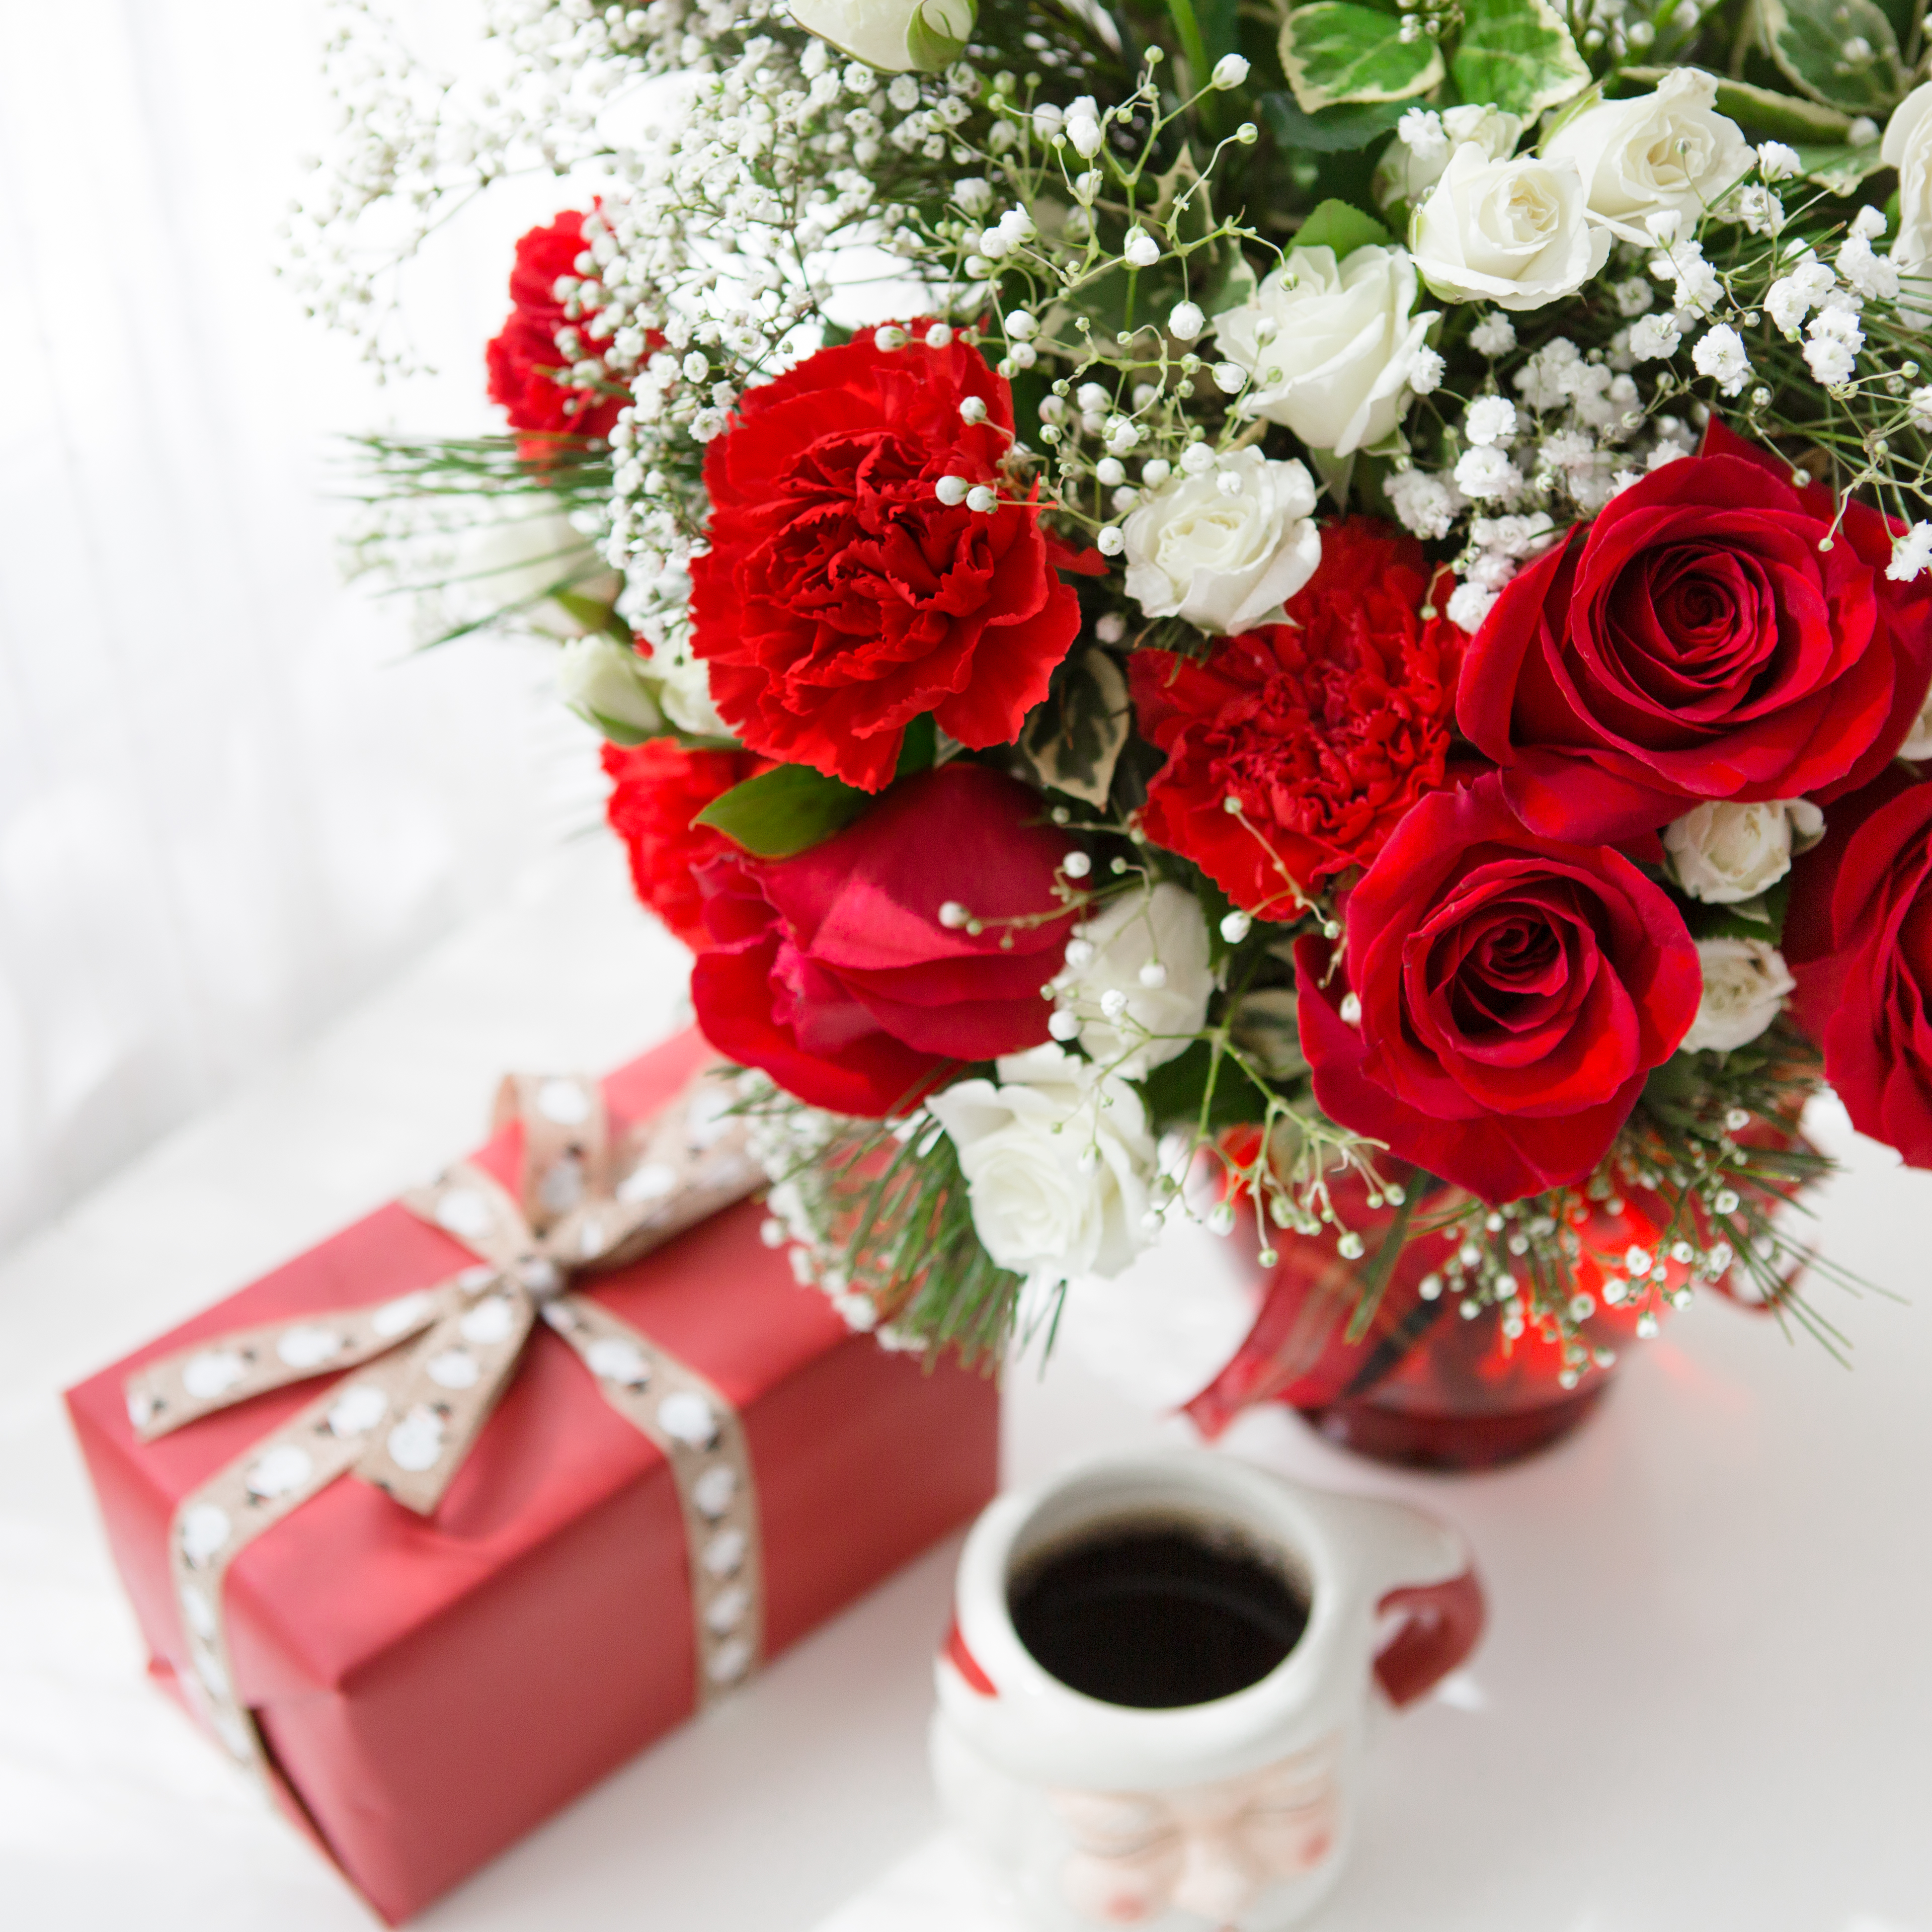 red and white flowers in red vase on table with present and coffee